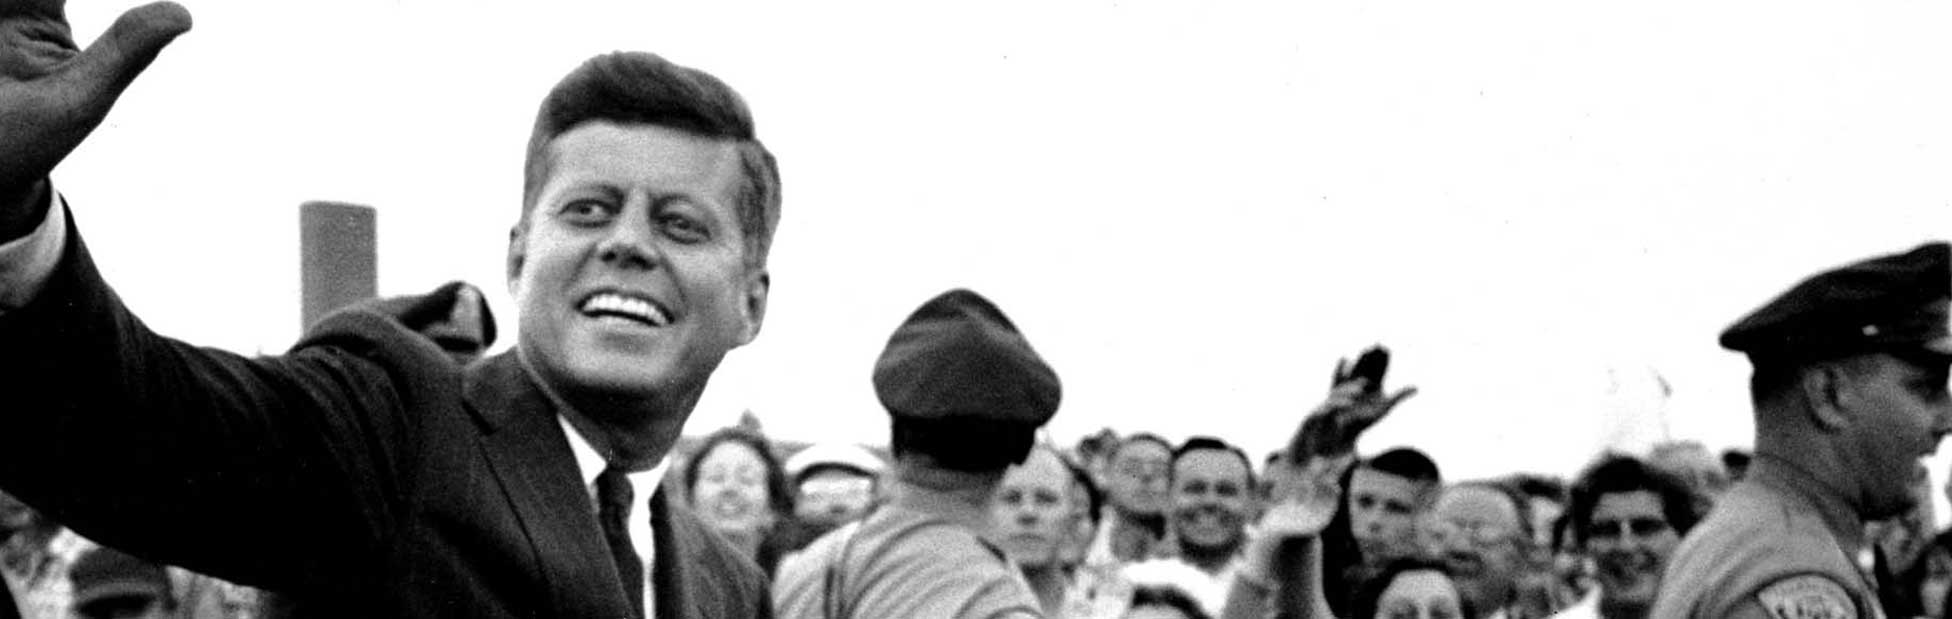 JFK sitting in the back of a car waving to the crowd